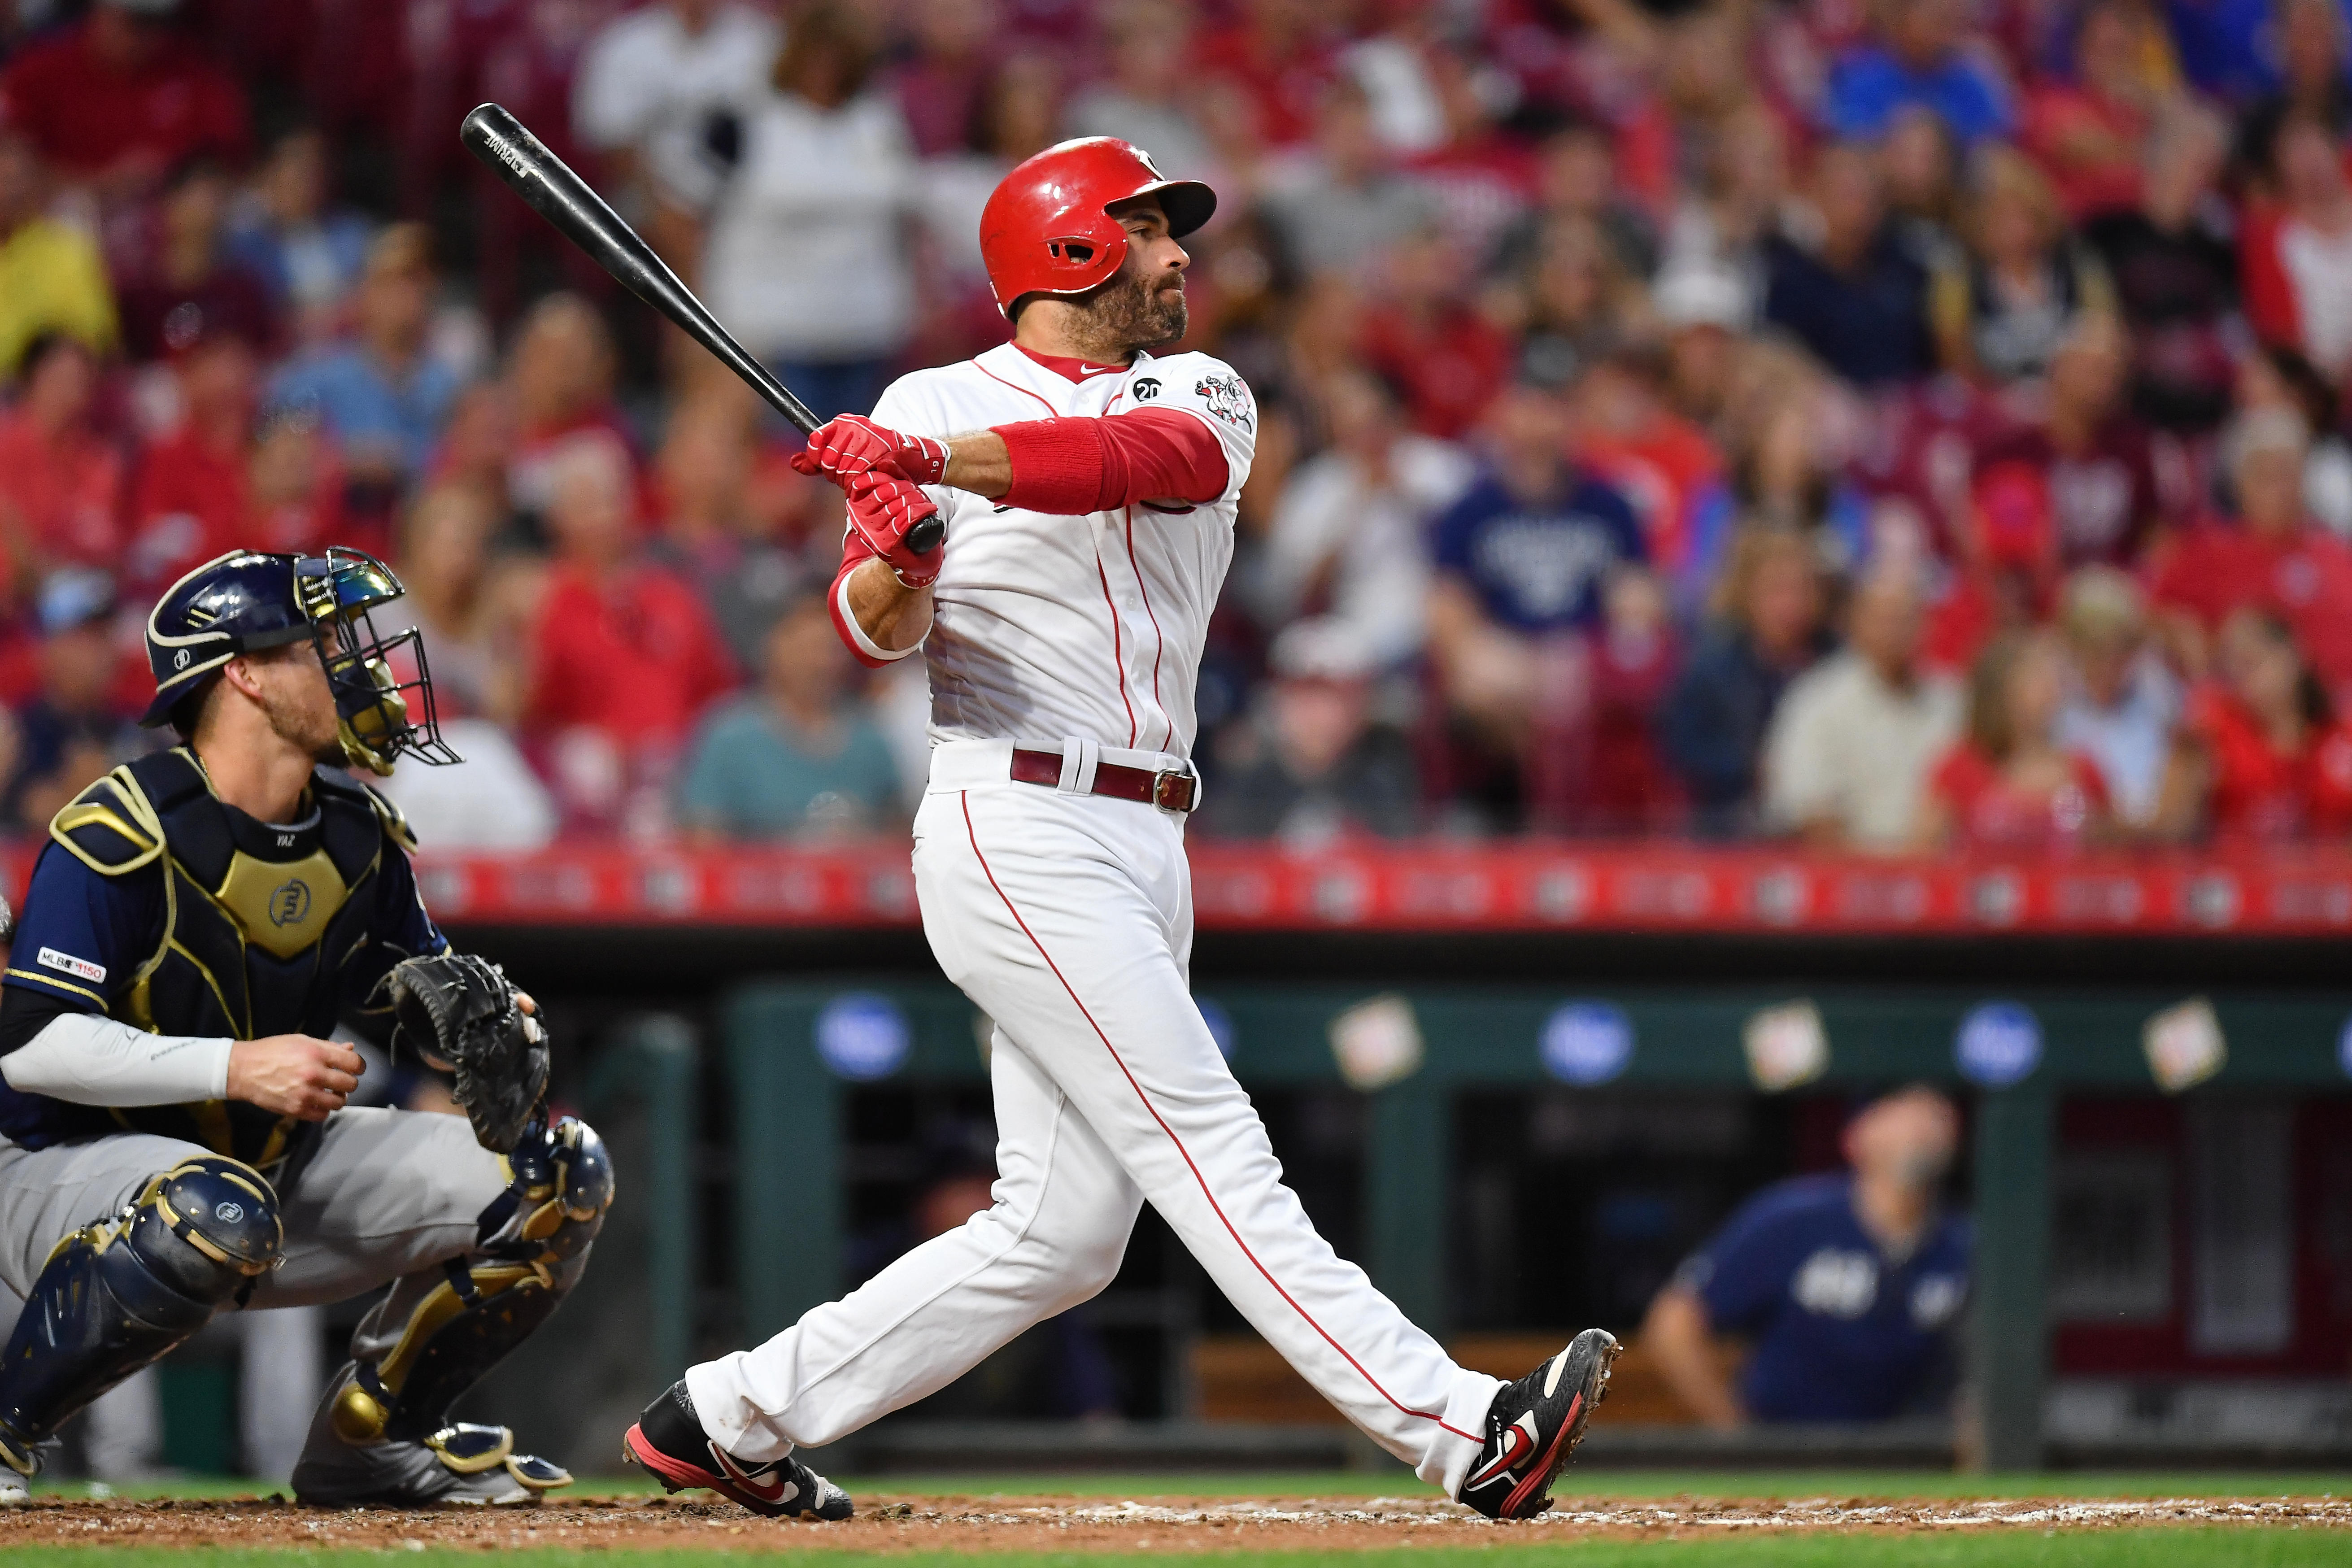 Joey Votto #19 of the Cincinnati Reds bats against the Milwaukee Brewers at Great American Ball Park on September 24, 2019 in Cincinnati, Ohio.